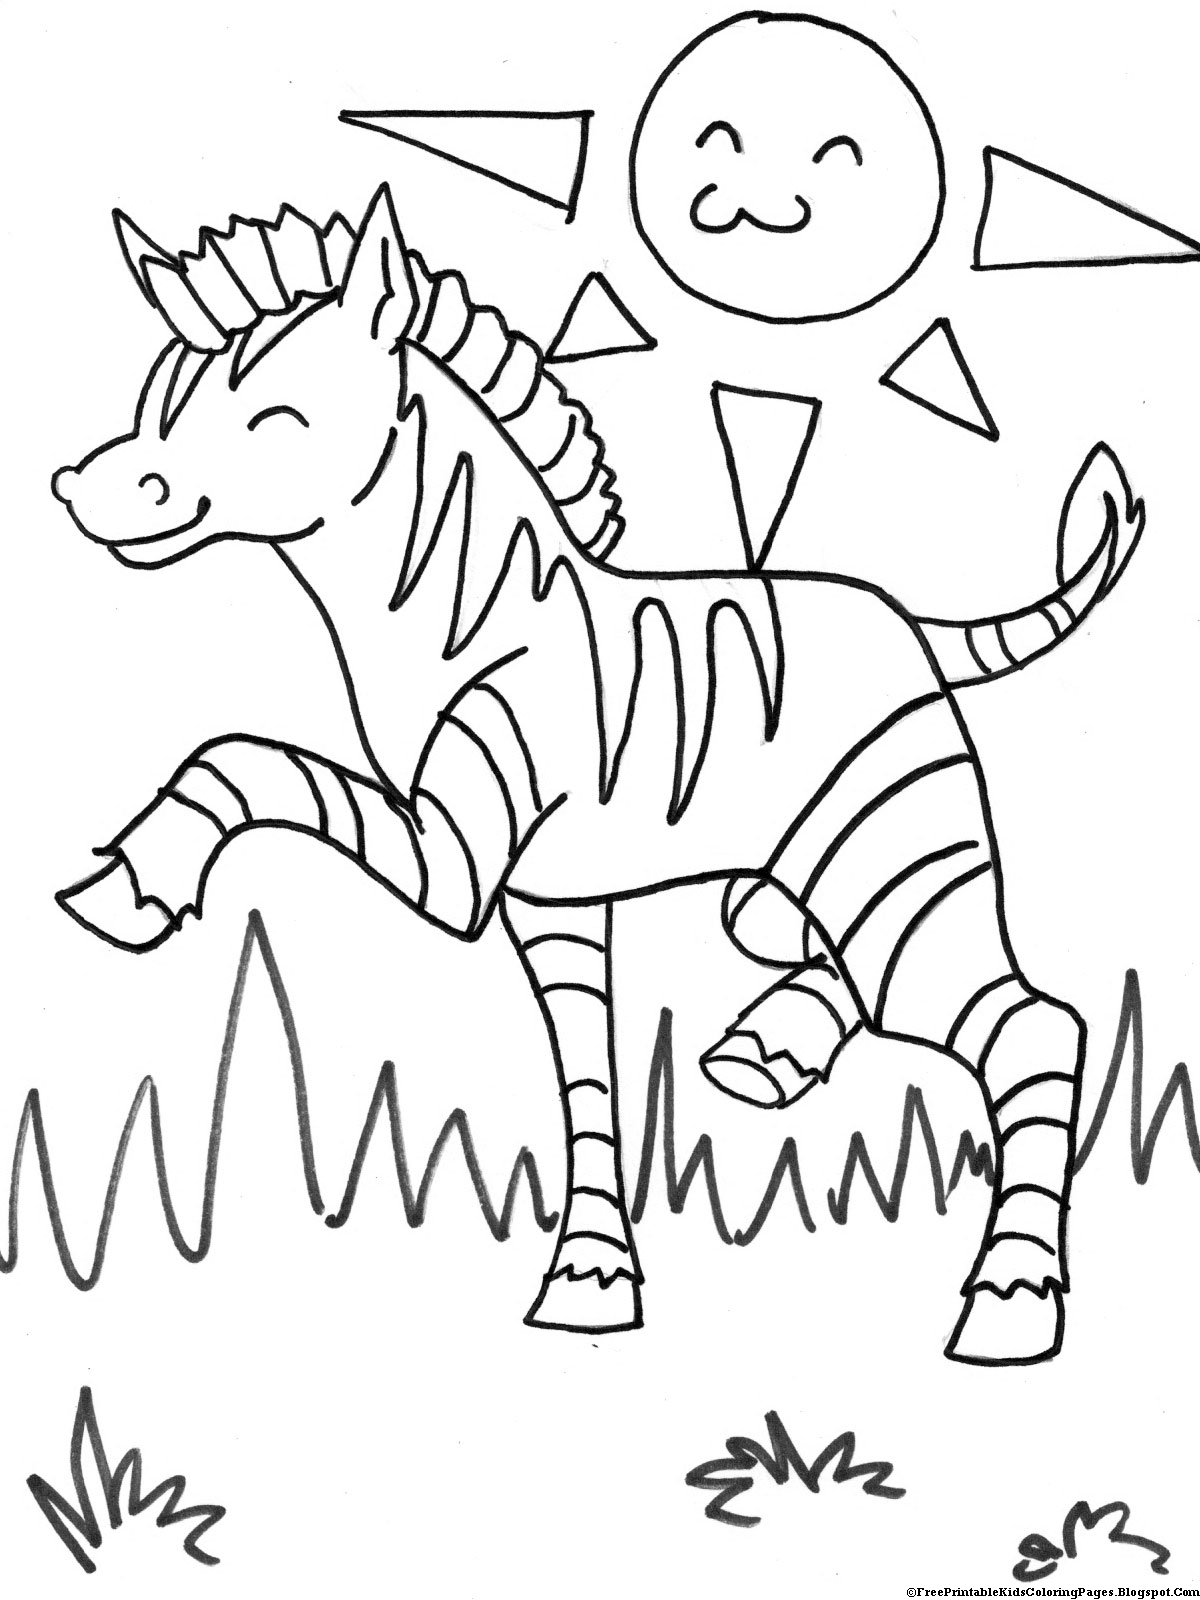 coloring pictures with color free printable tangled coloring pages for kids cool2bkids color pictures coloring with